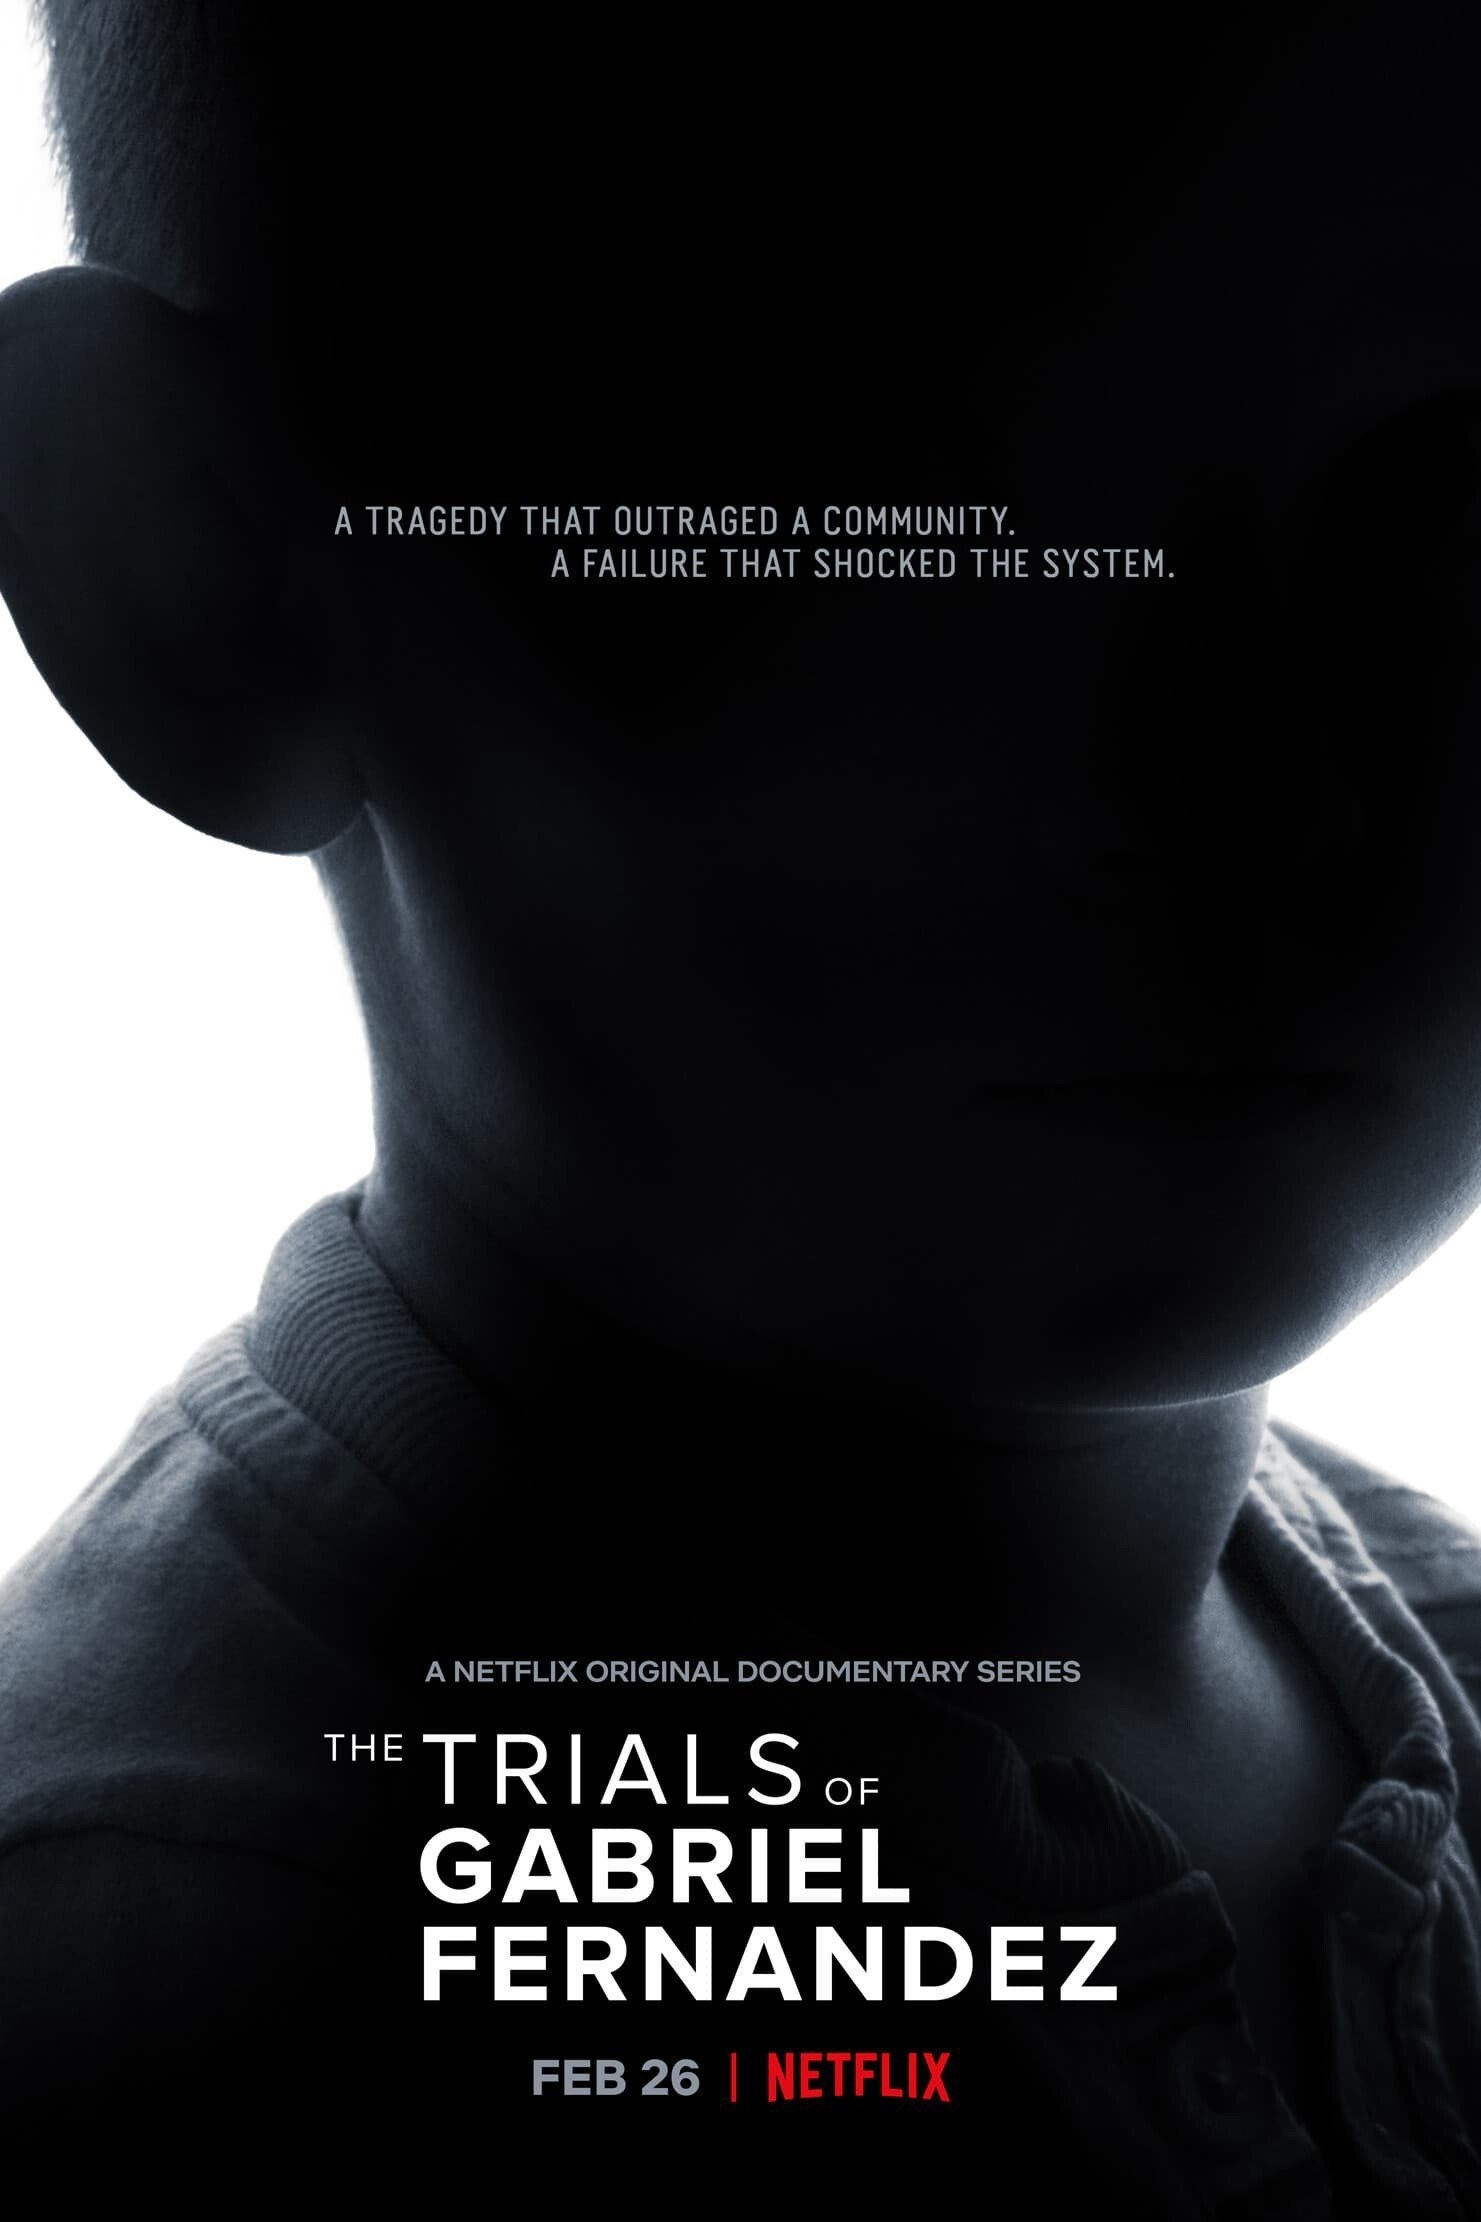 netflix poster for the trials of gabriel fernandez